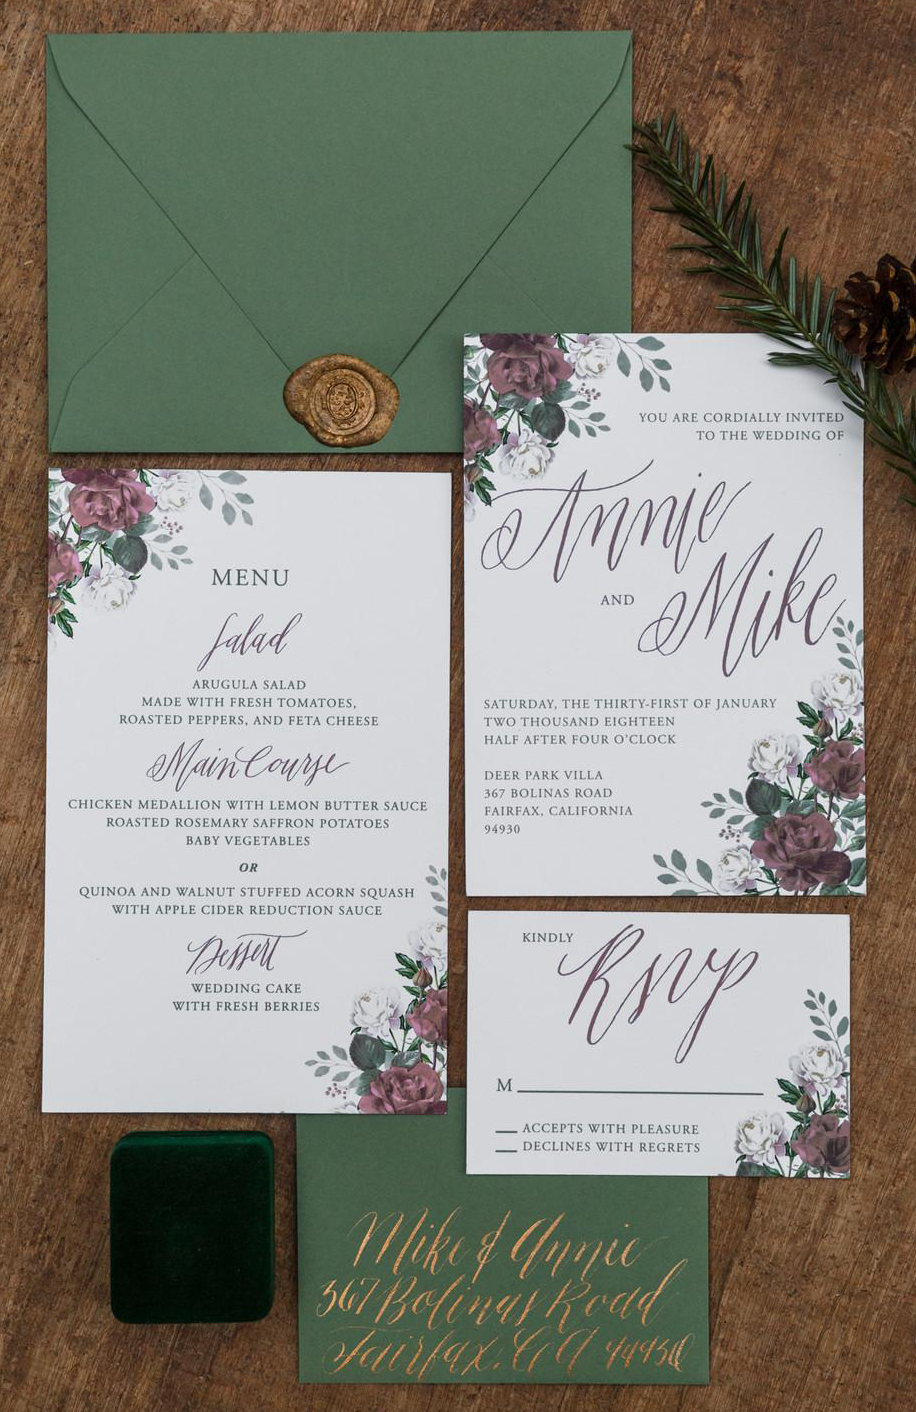 Wedding Invitation Suite w/matching Menu Design. Photo courtesy of  Lara Onac Photography .